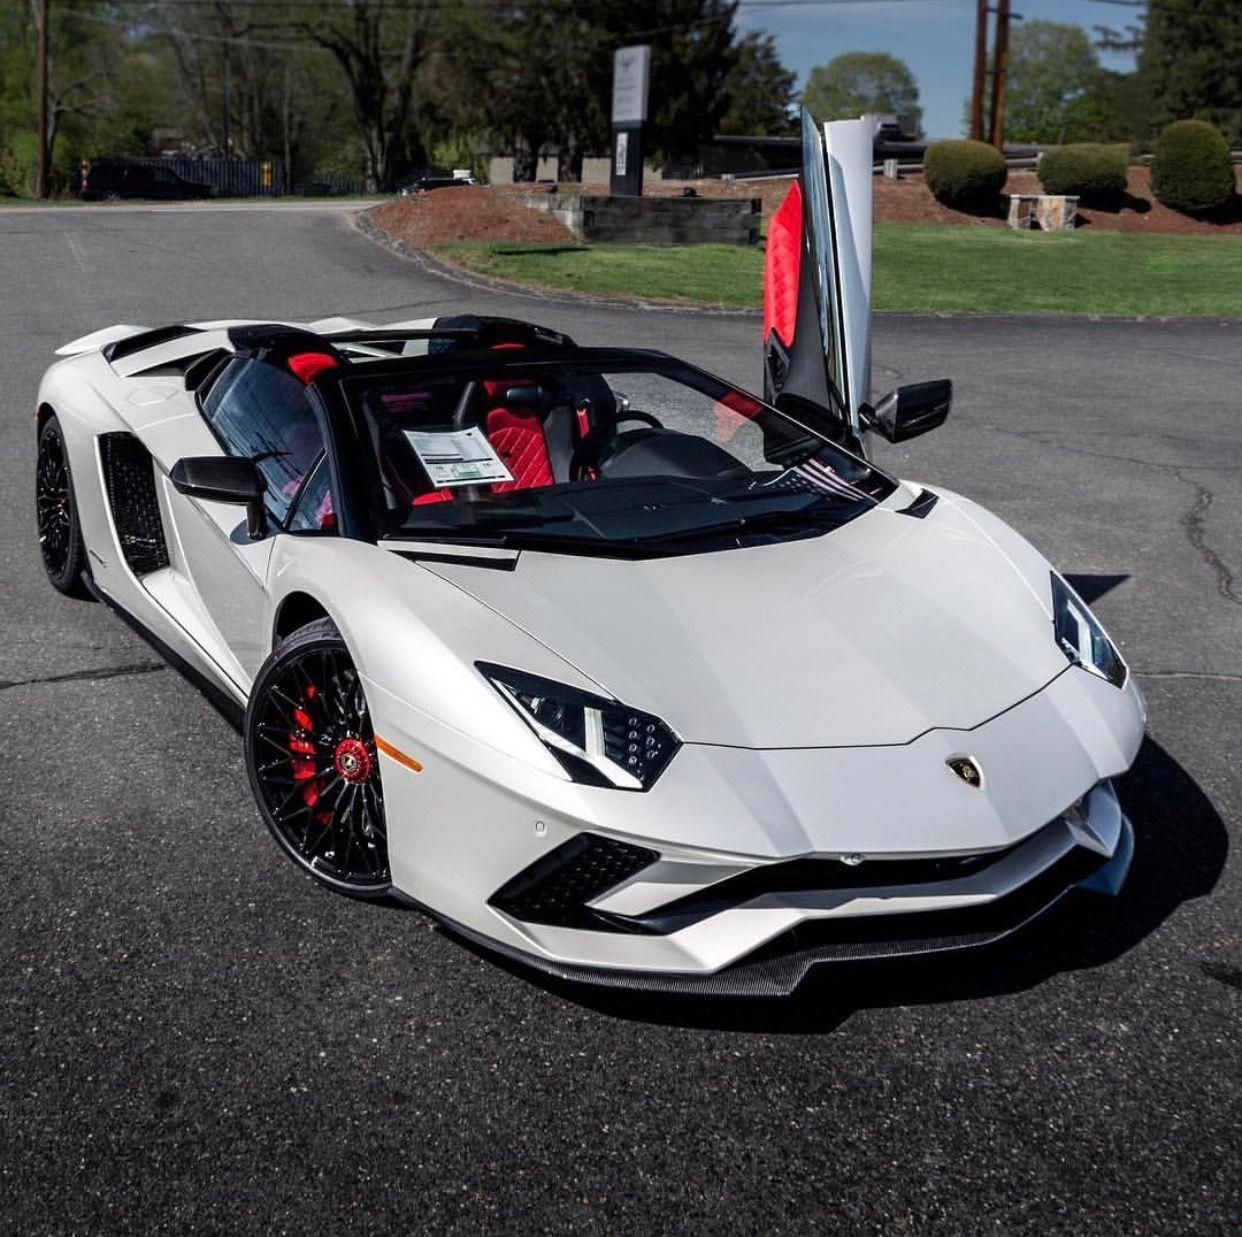 Lamborghini Aventador: Lamborghini Aventador S Roadster Painted In Balloon White